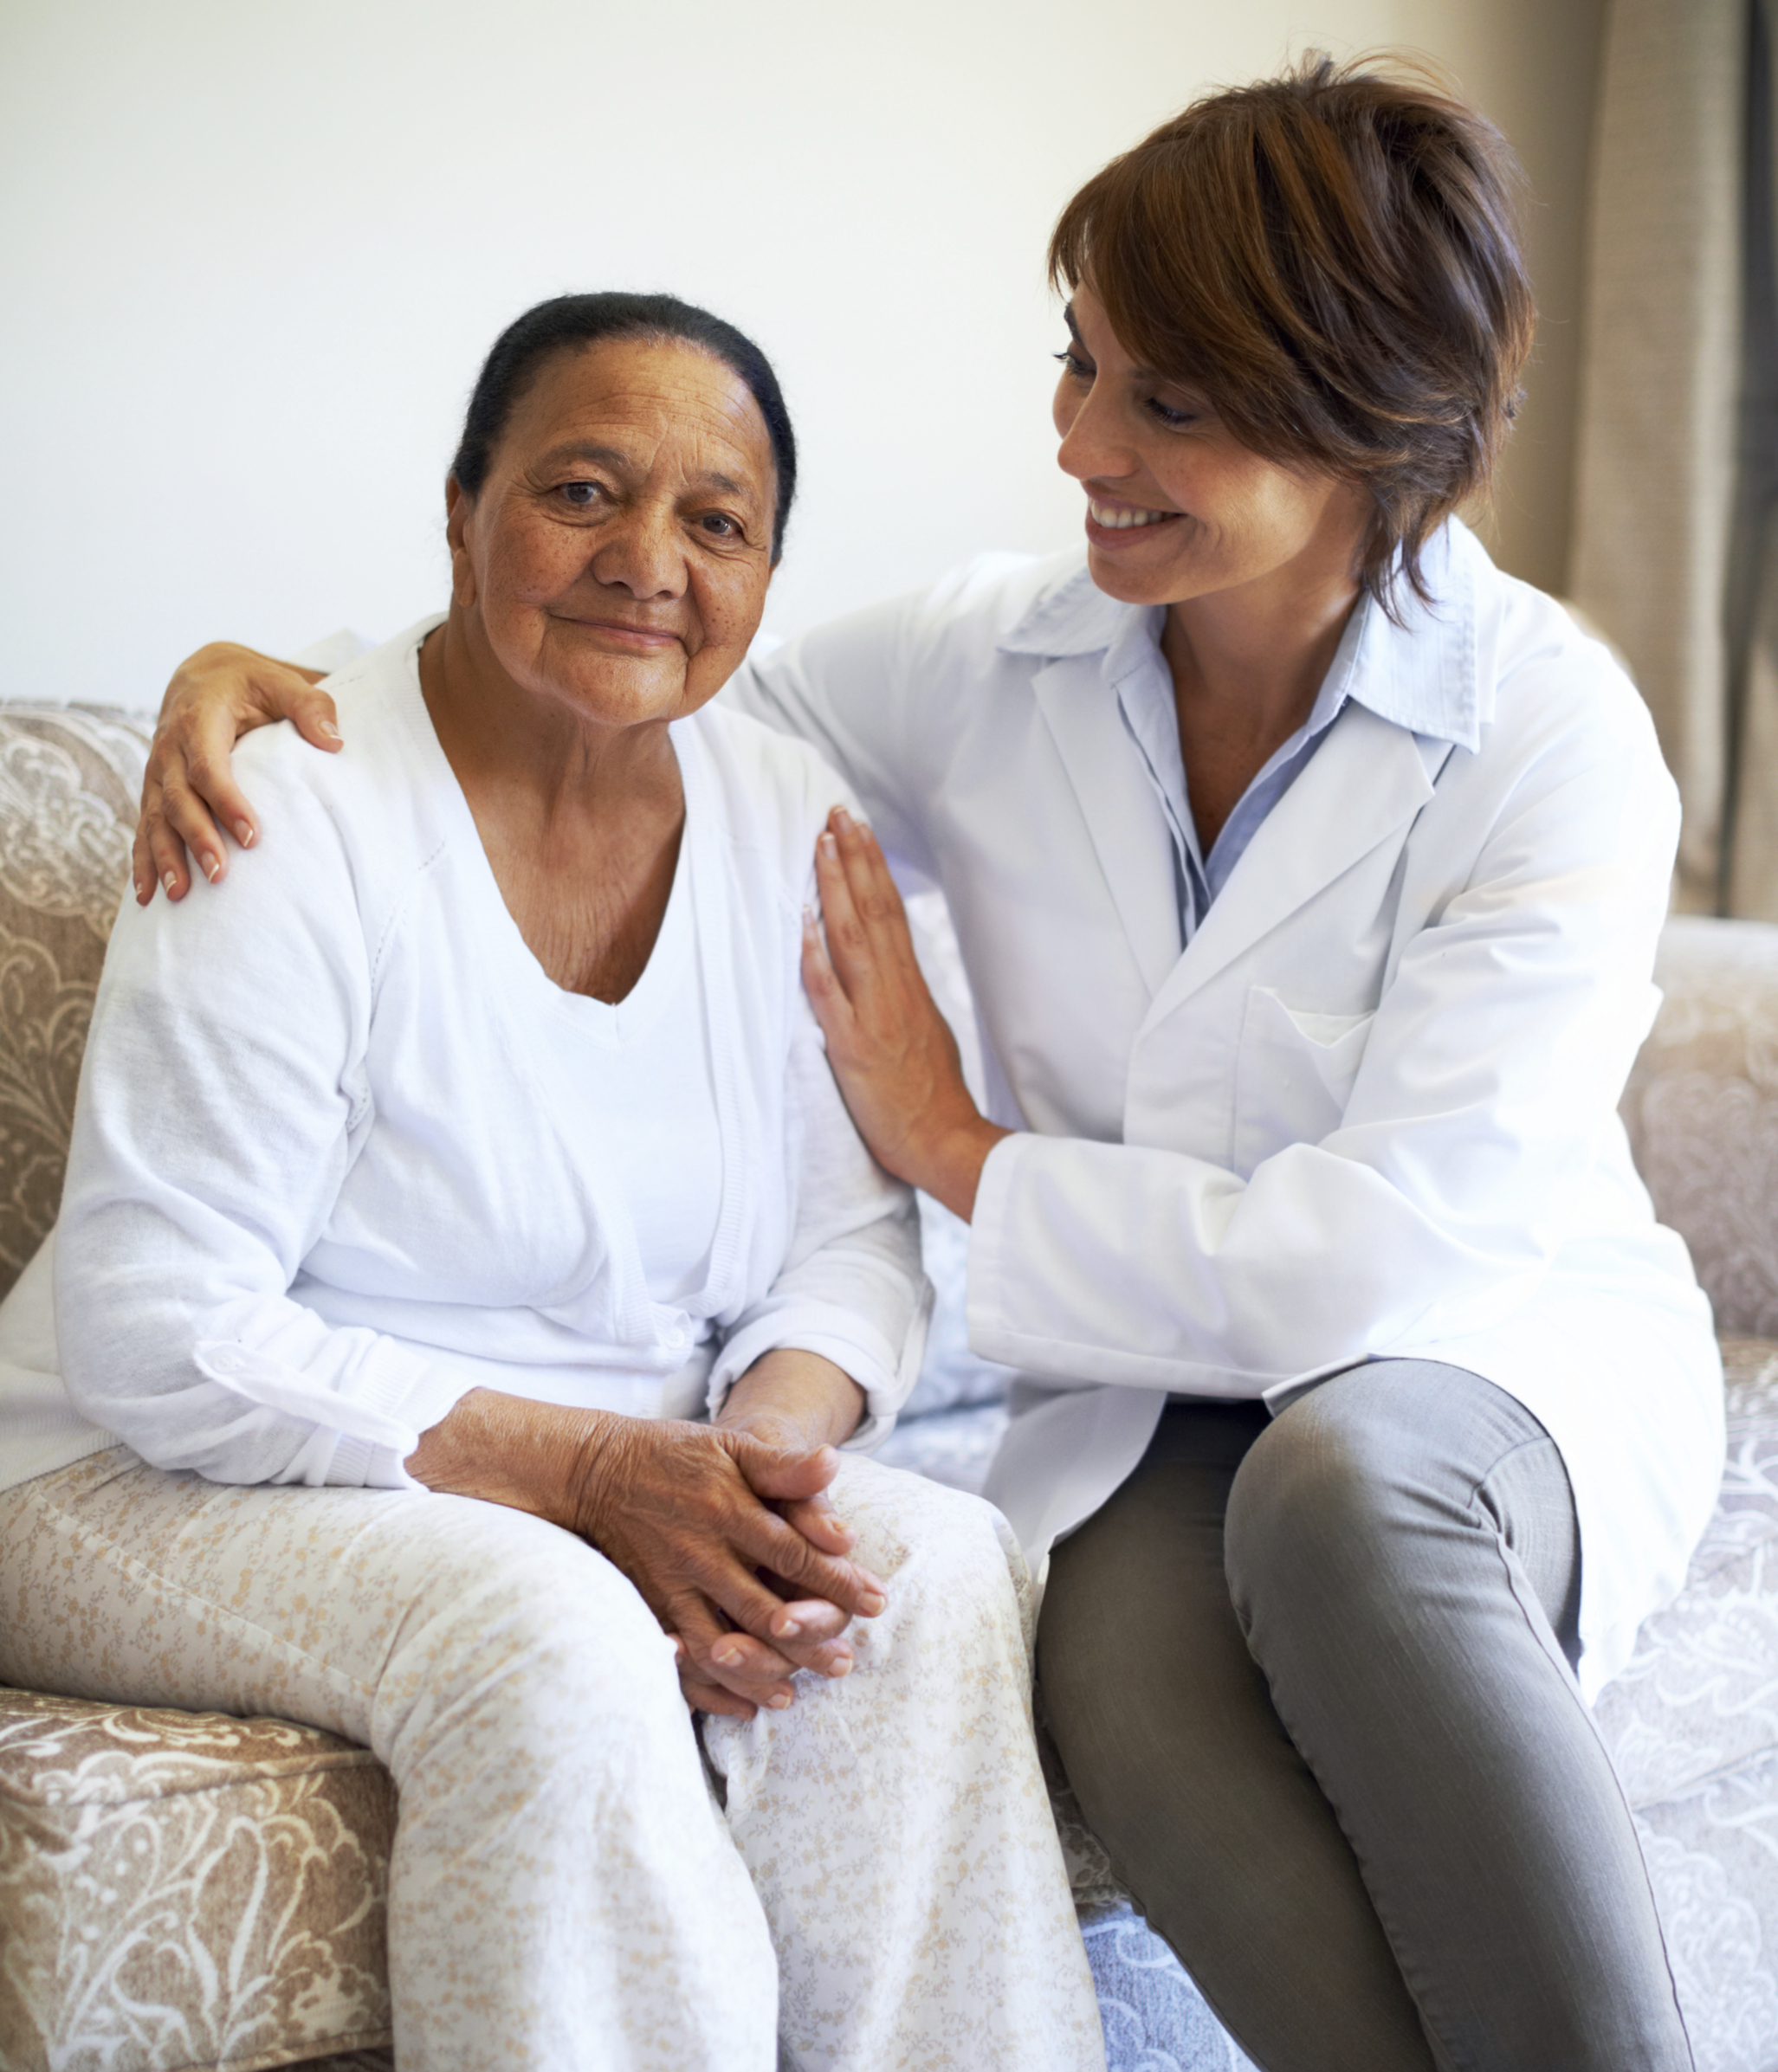 Client With Care Aide Nurse